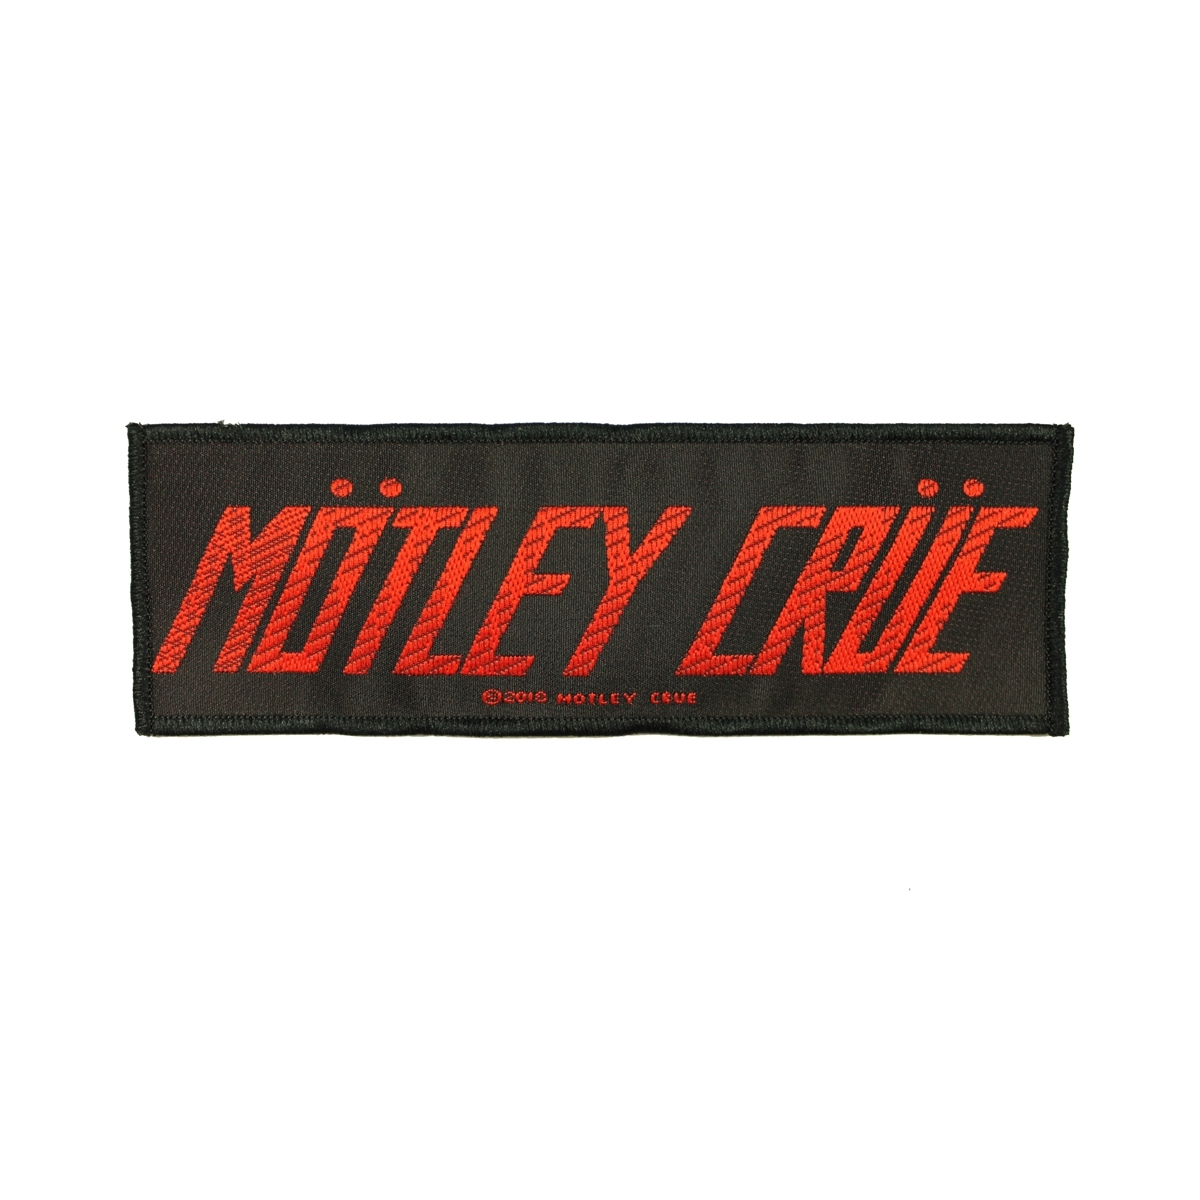 Motley Crue Band Logo Patch Hard Rock Band Heavy Metal Woven Sew On Applique.